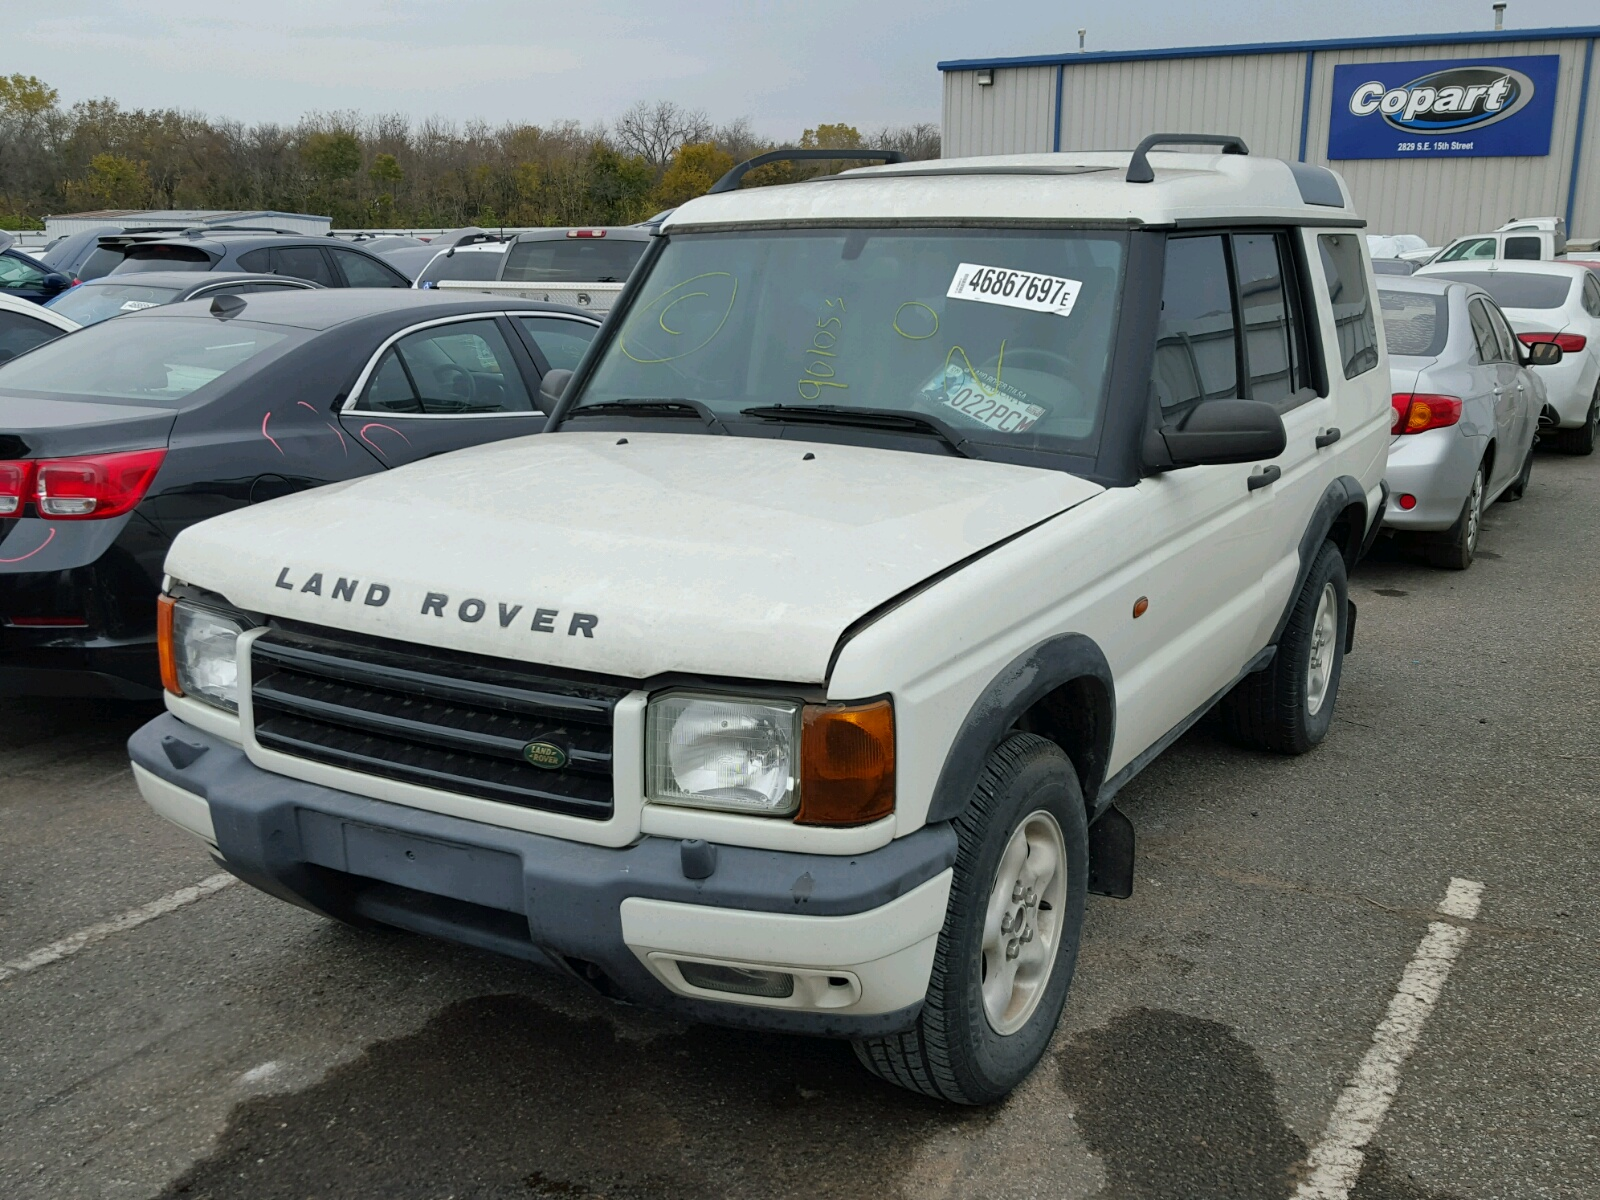 hse luxury wiki discovery landrover land rover sport for wikipedia sale